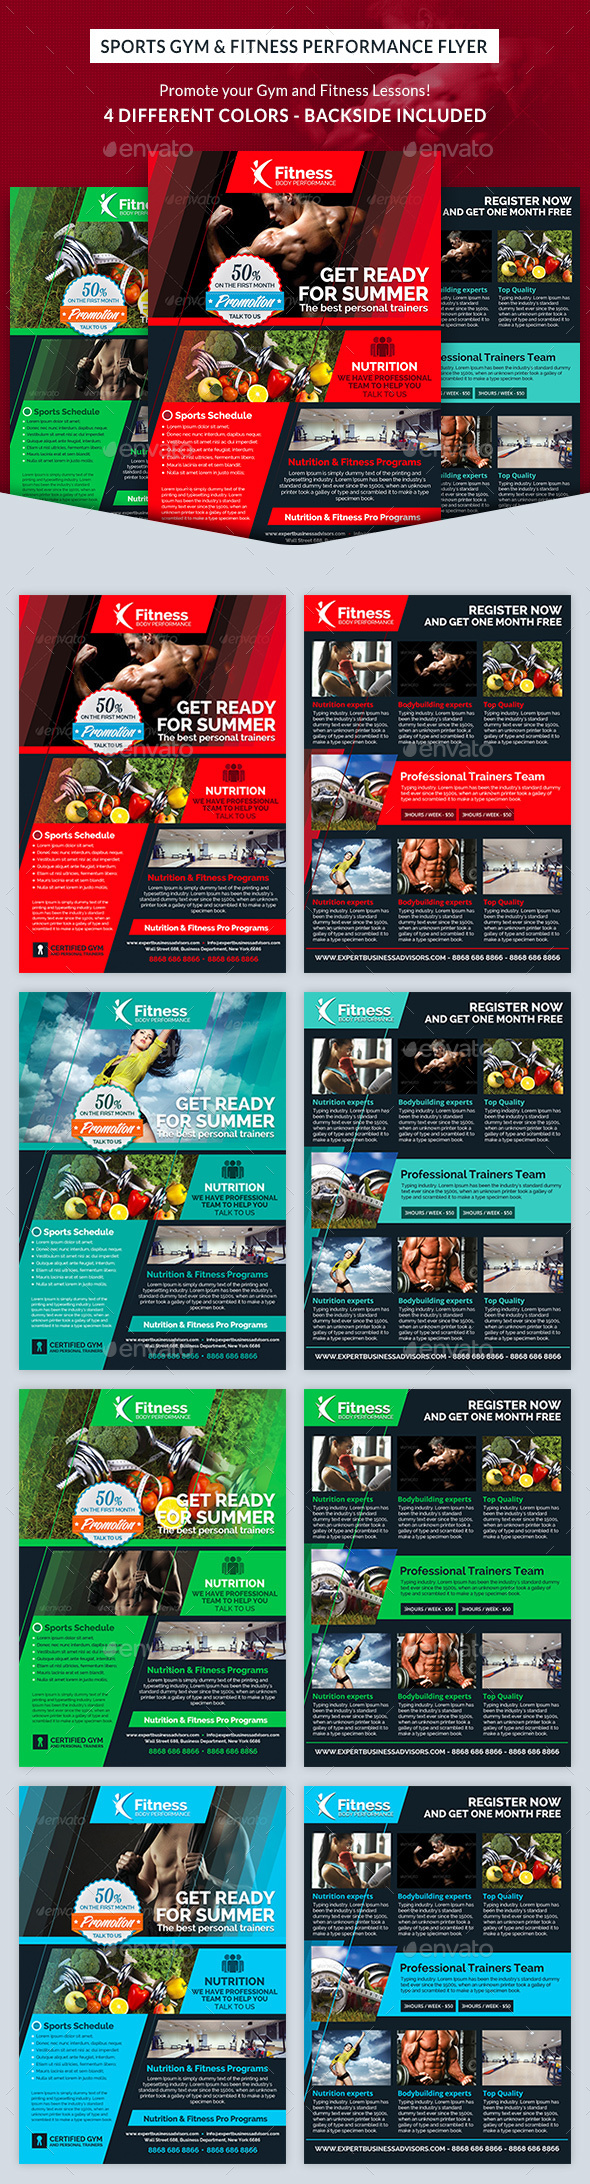 Sports Gym & Fitness Performance Flyer - Sports Events